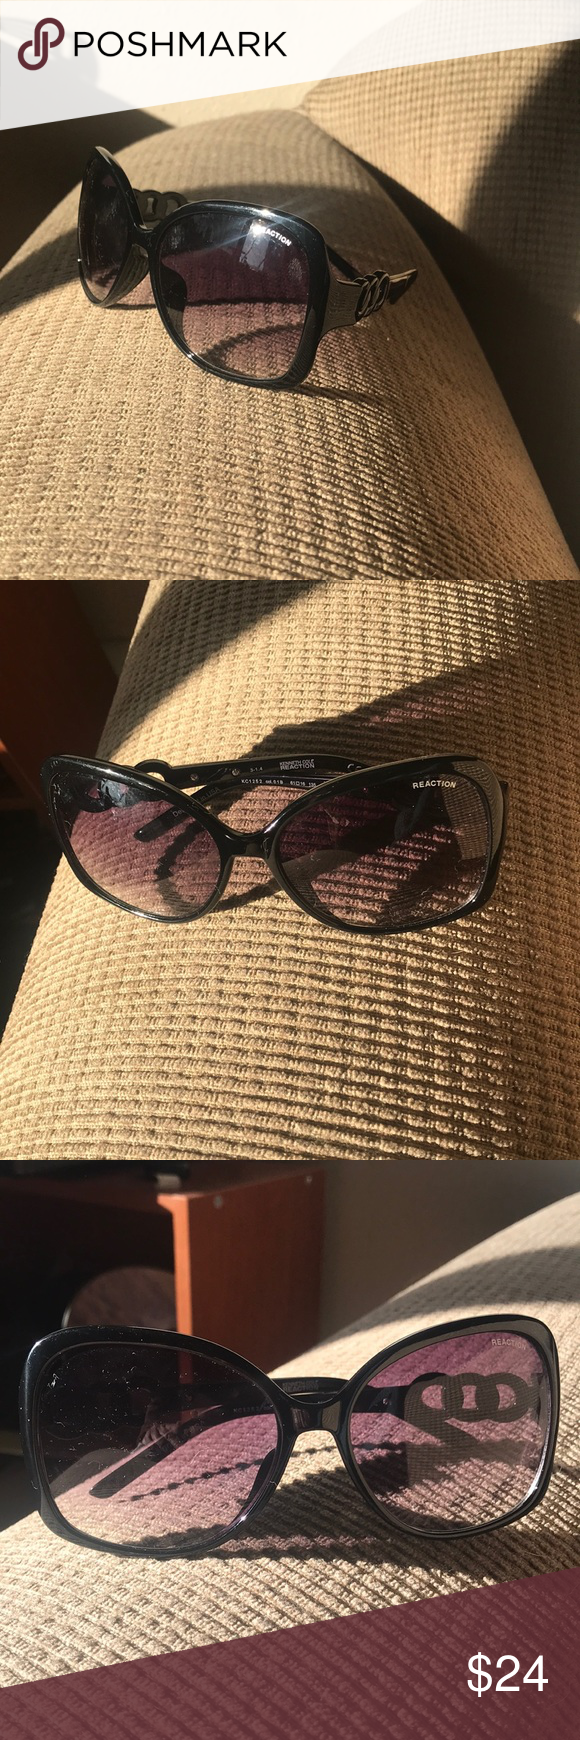 Reaction Kenneth Cole Sunglasses NWOT Super Cute! Love these! Perfect sunglasses…